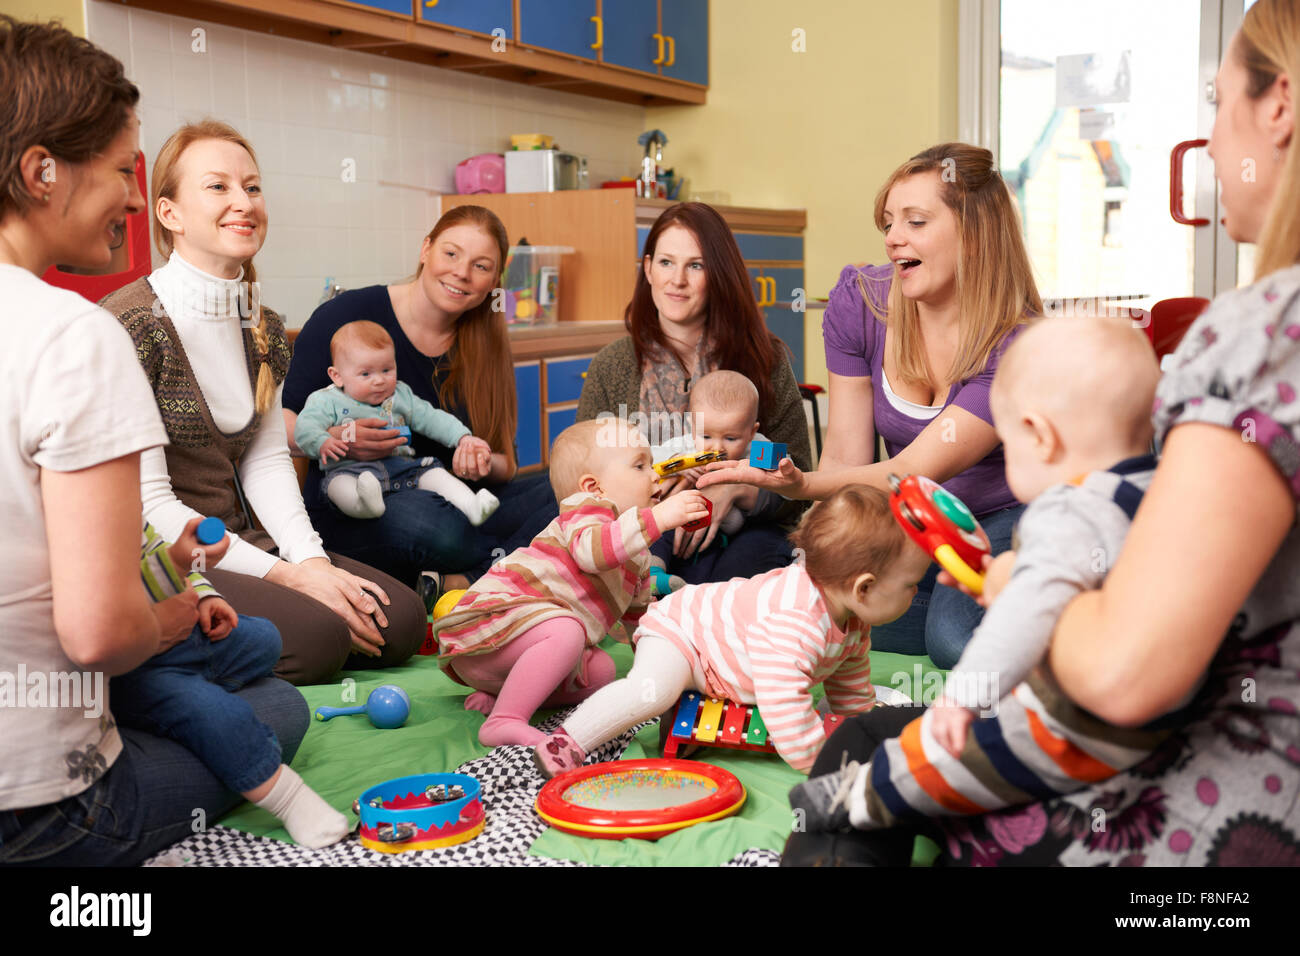 Group Of Mothers With Babies At Playgroup - Stock Image